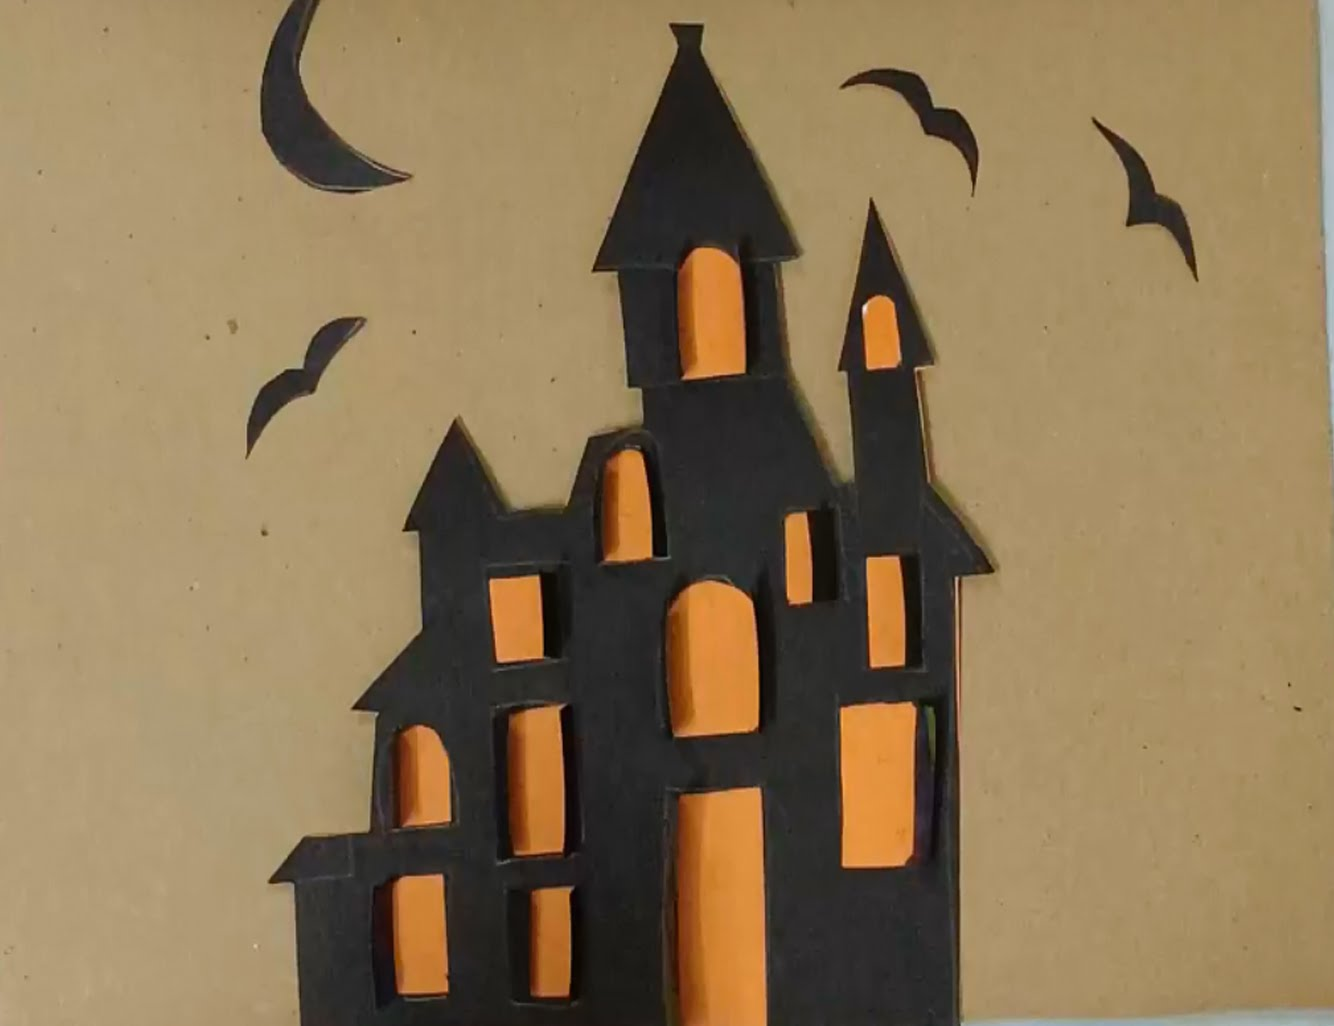 Drawn haunted house kid To art to a halloween